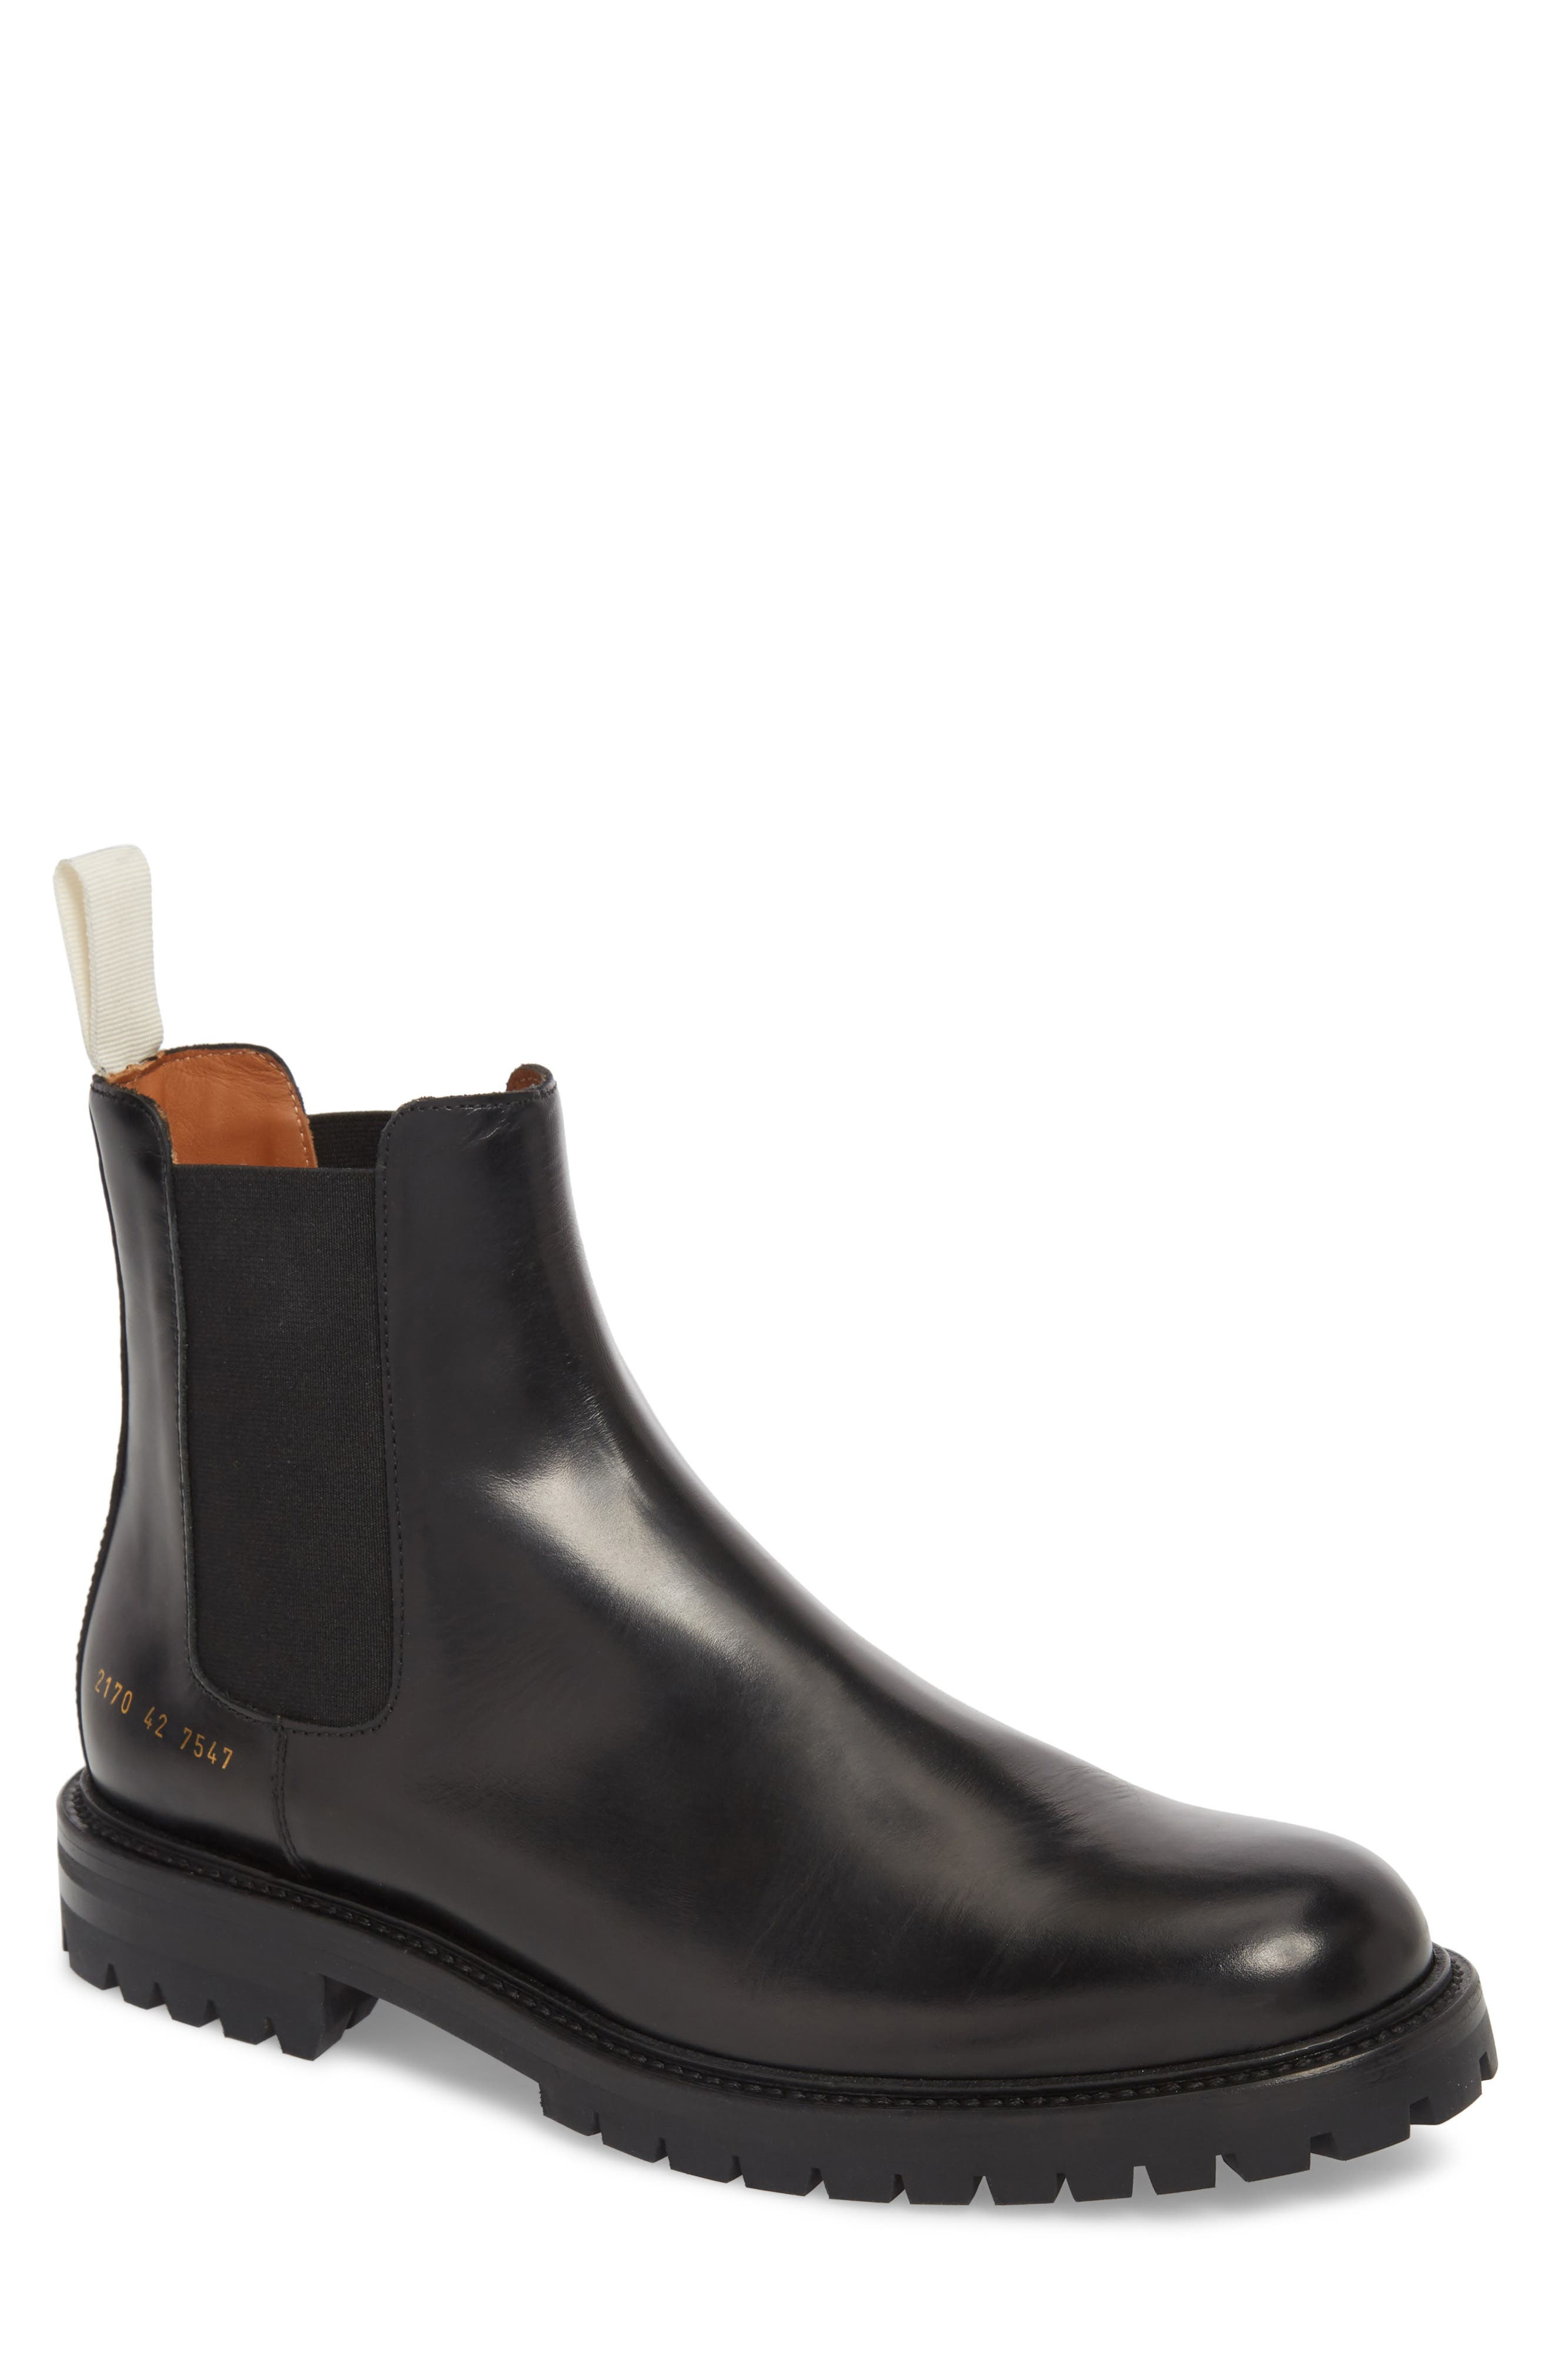 COMMON PROJECTS Lugged Chelsea Boot, Main, color, 001